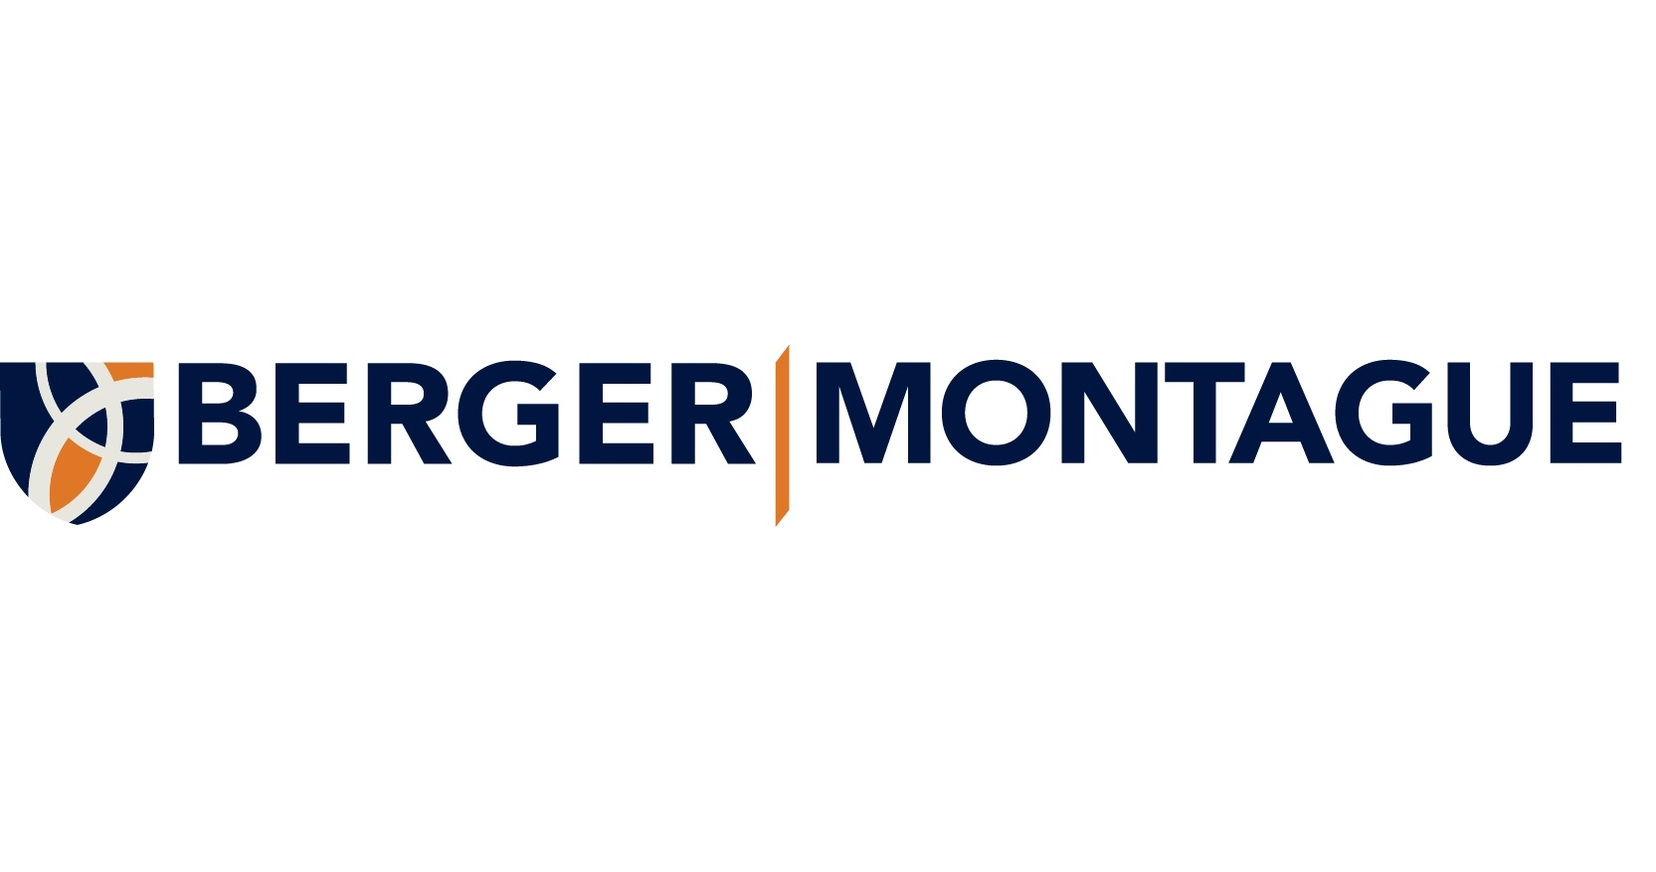 Berger Montague: $4 Million Settlement Reached in Medicare Fraud Lawsuit Against Tampa Dermatologist Practice